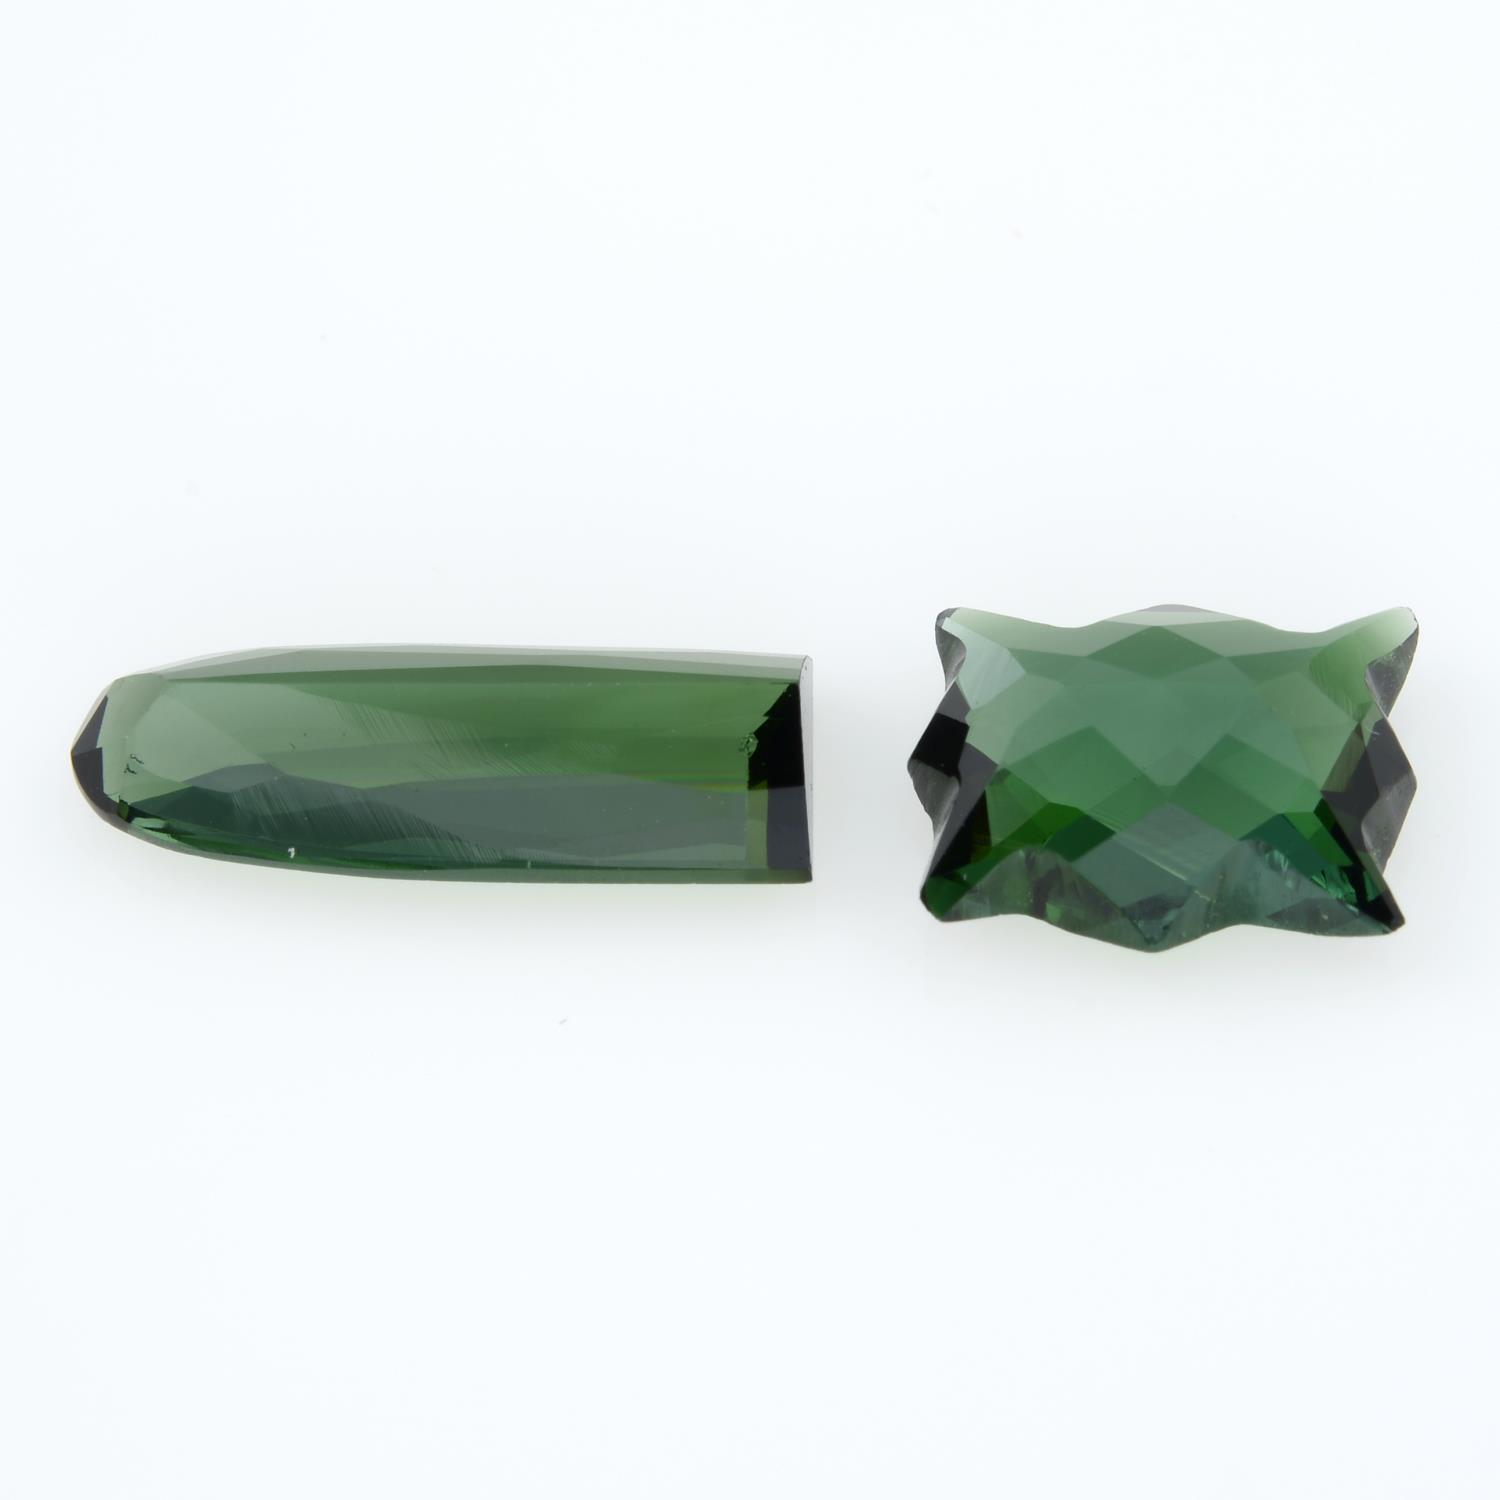 Two fancy shape green tourmalines, weighing 4.96ct. - Image 2 of 2